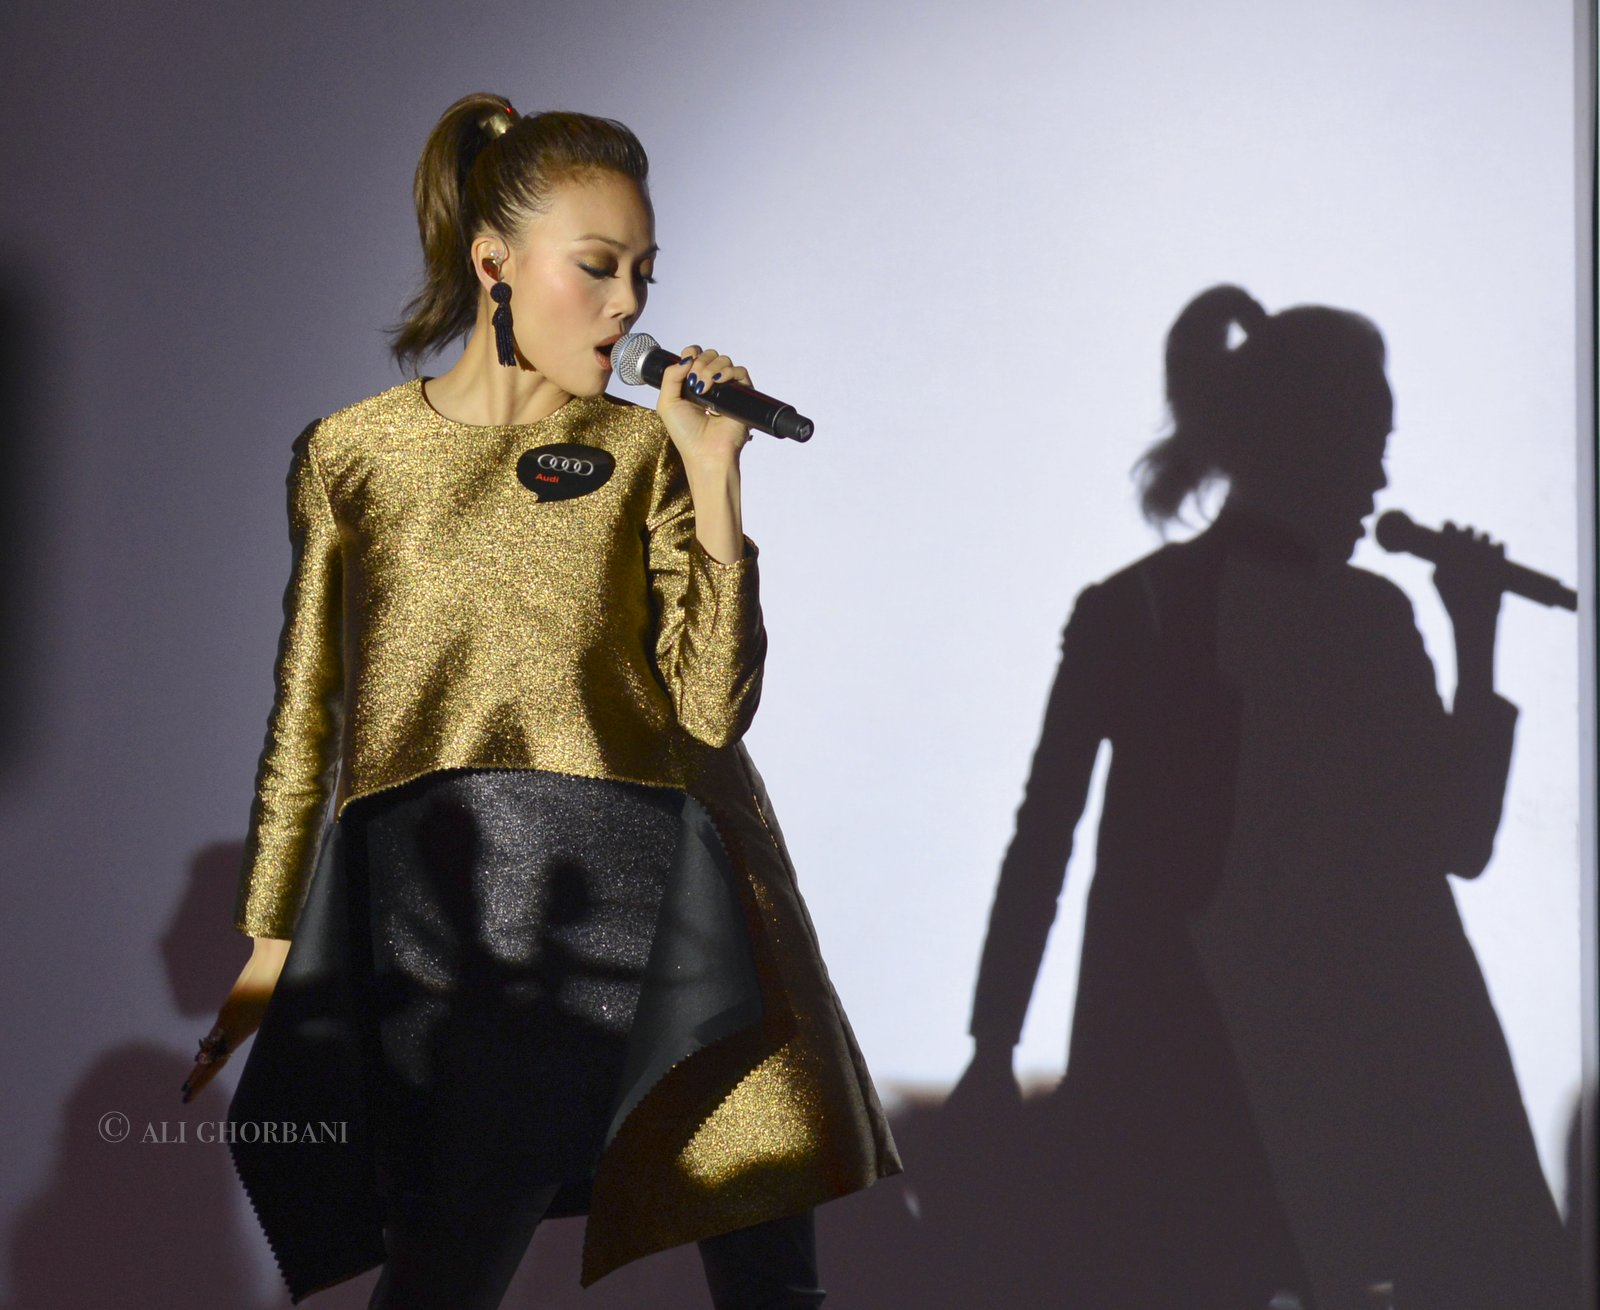 Events Photographer Hong Kong - Joey Yung